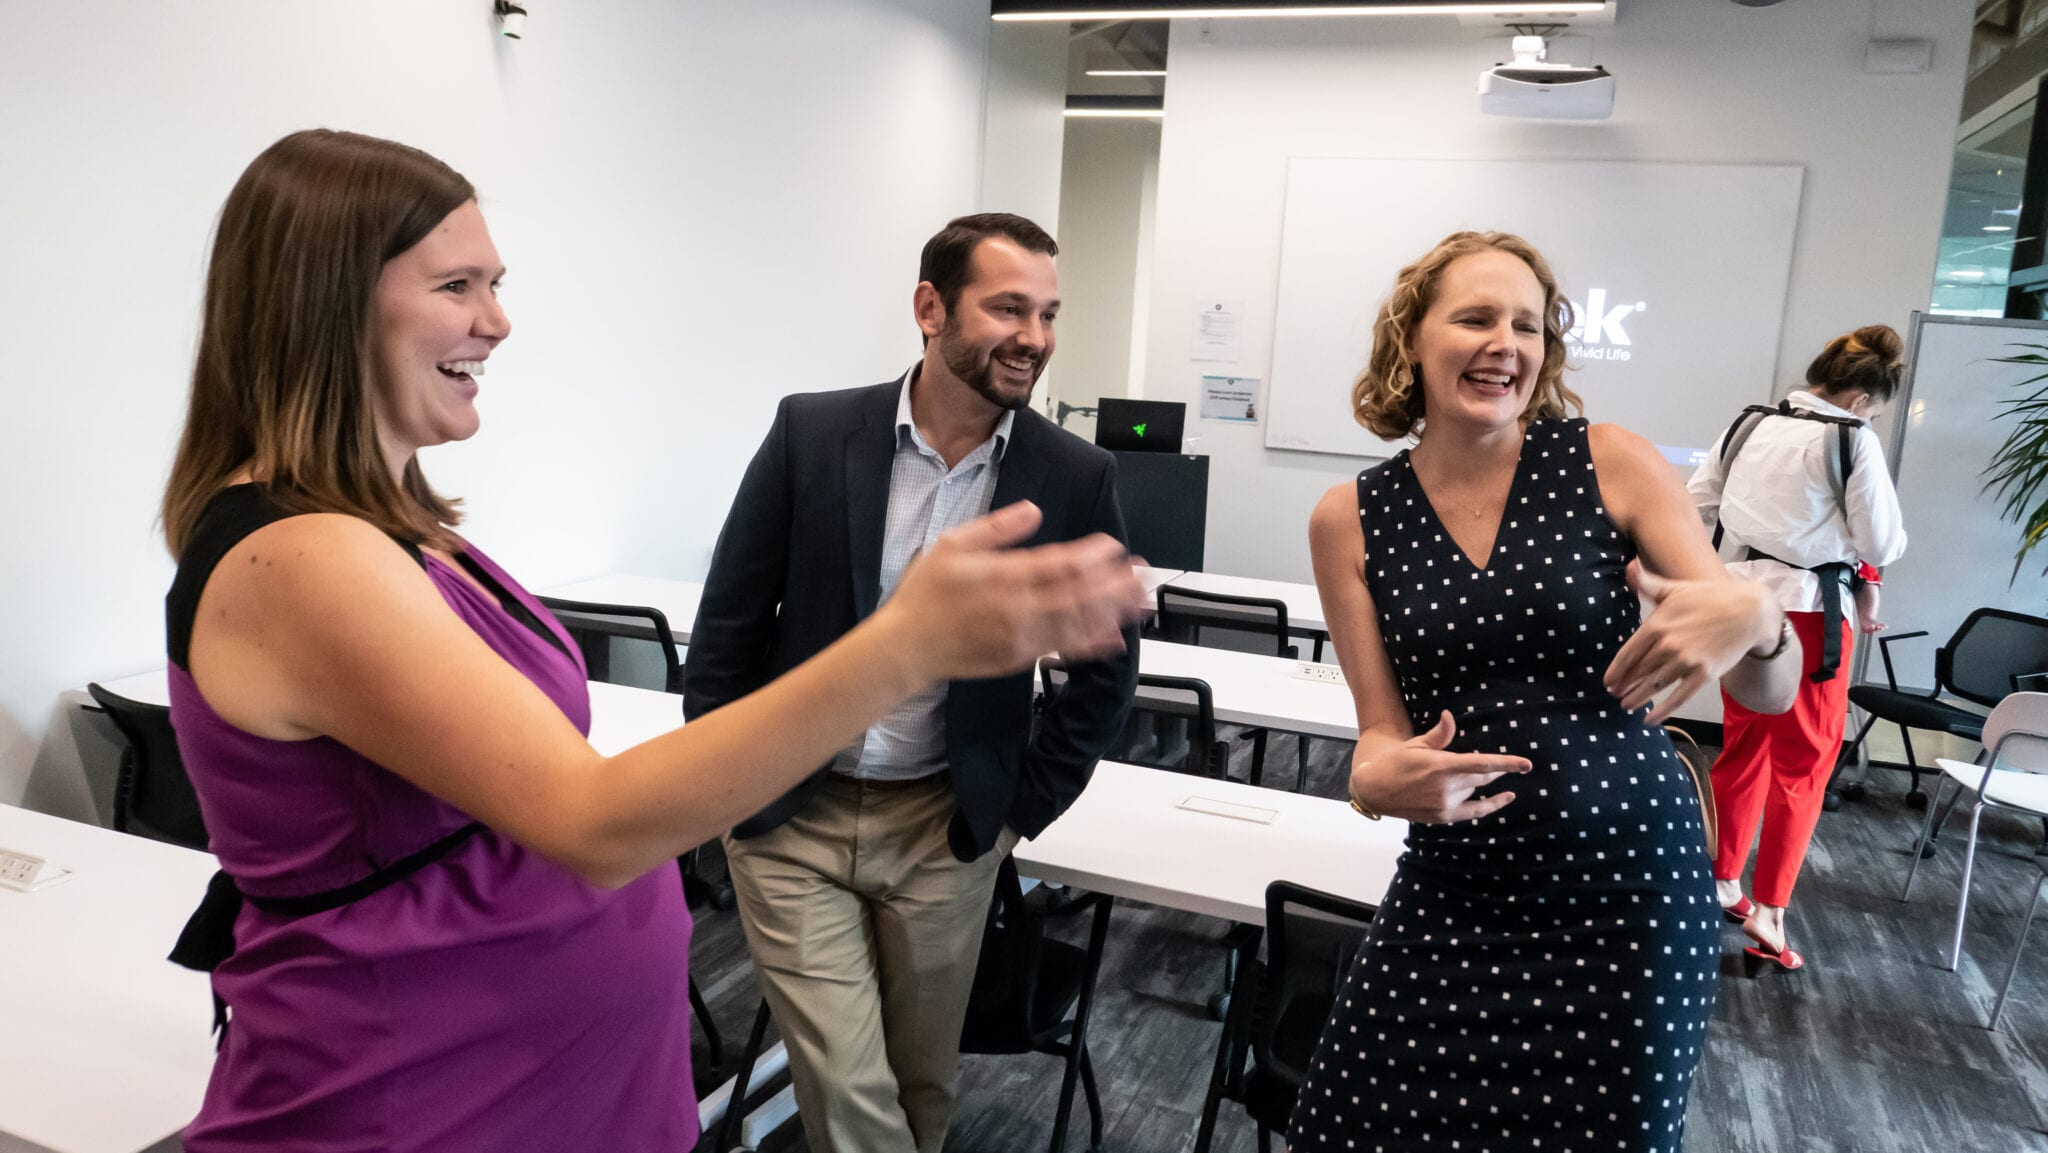 Amber and a man and woman at a meetup event laughing